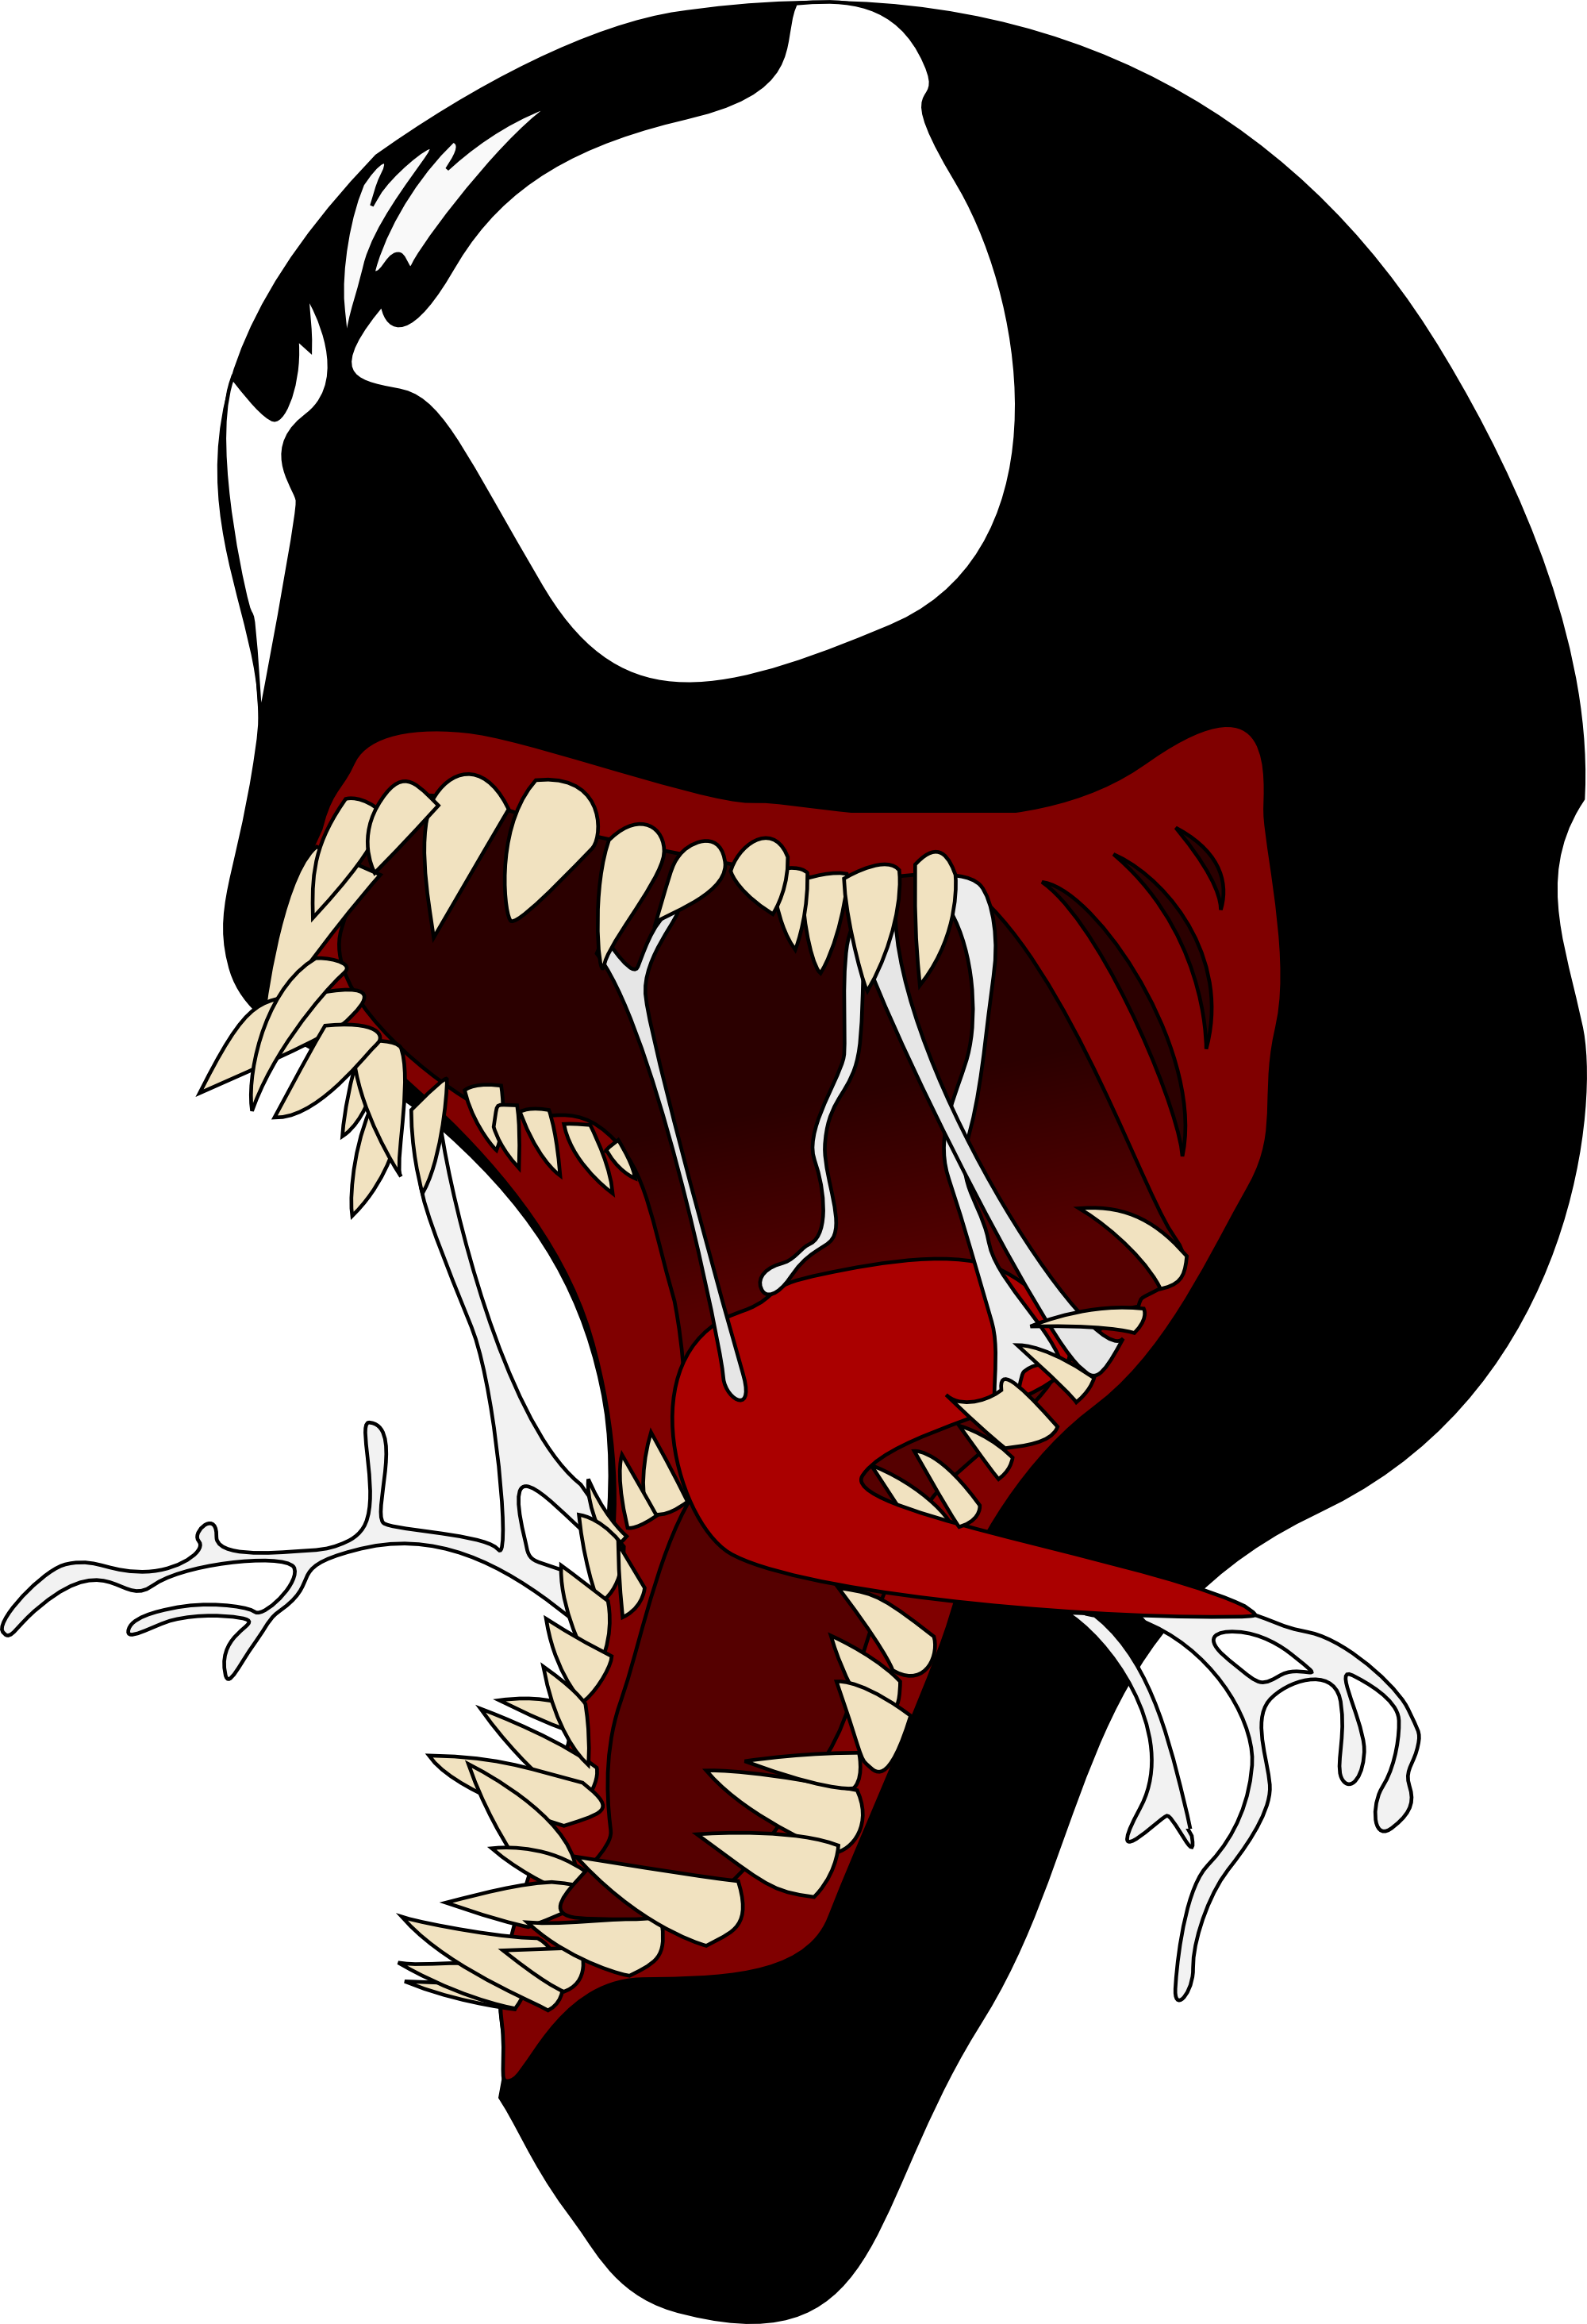 Venom face png. Wallpaperheaven facepng by blackcraft